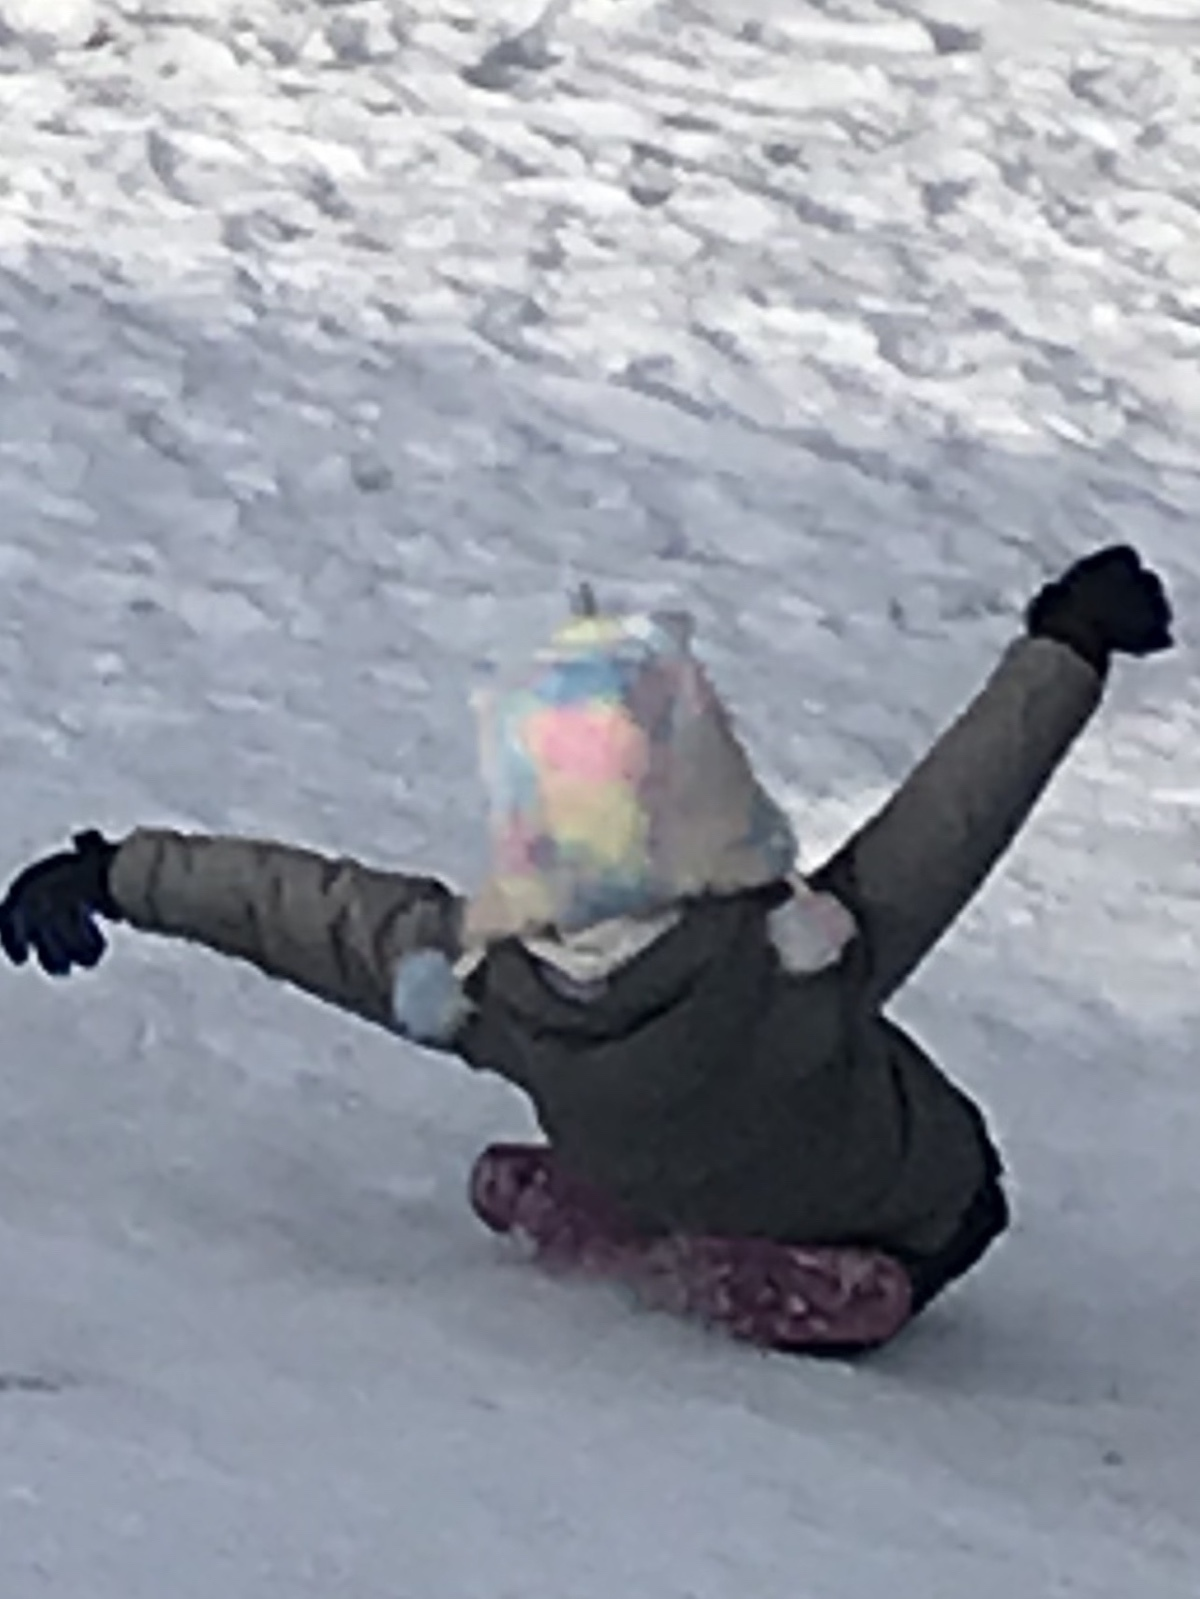 Week 1 2nd Grade Edgecomb Eddy Winter Games 2021 Moment of the Week